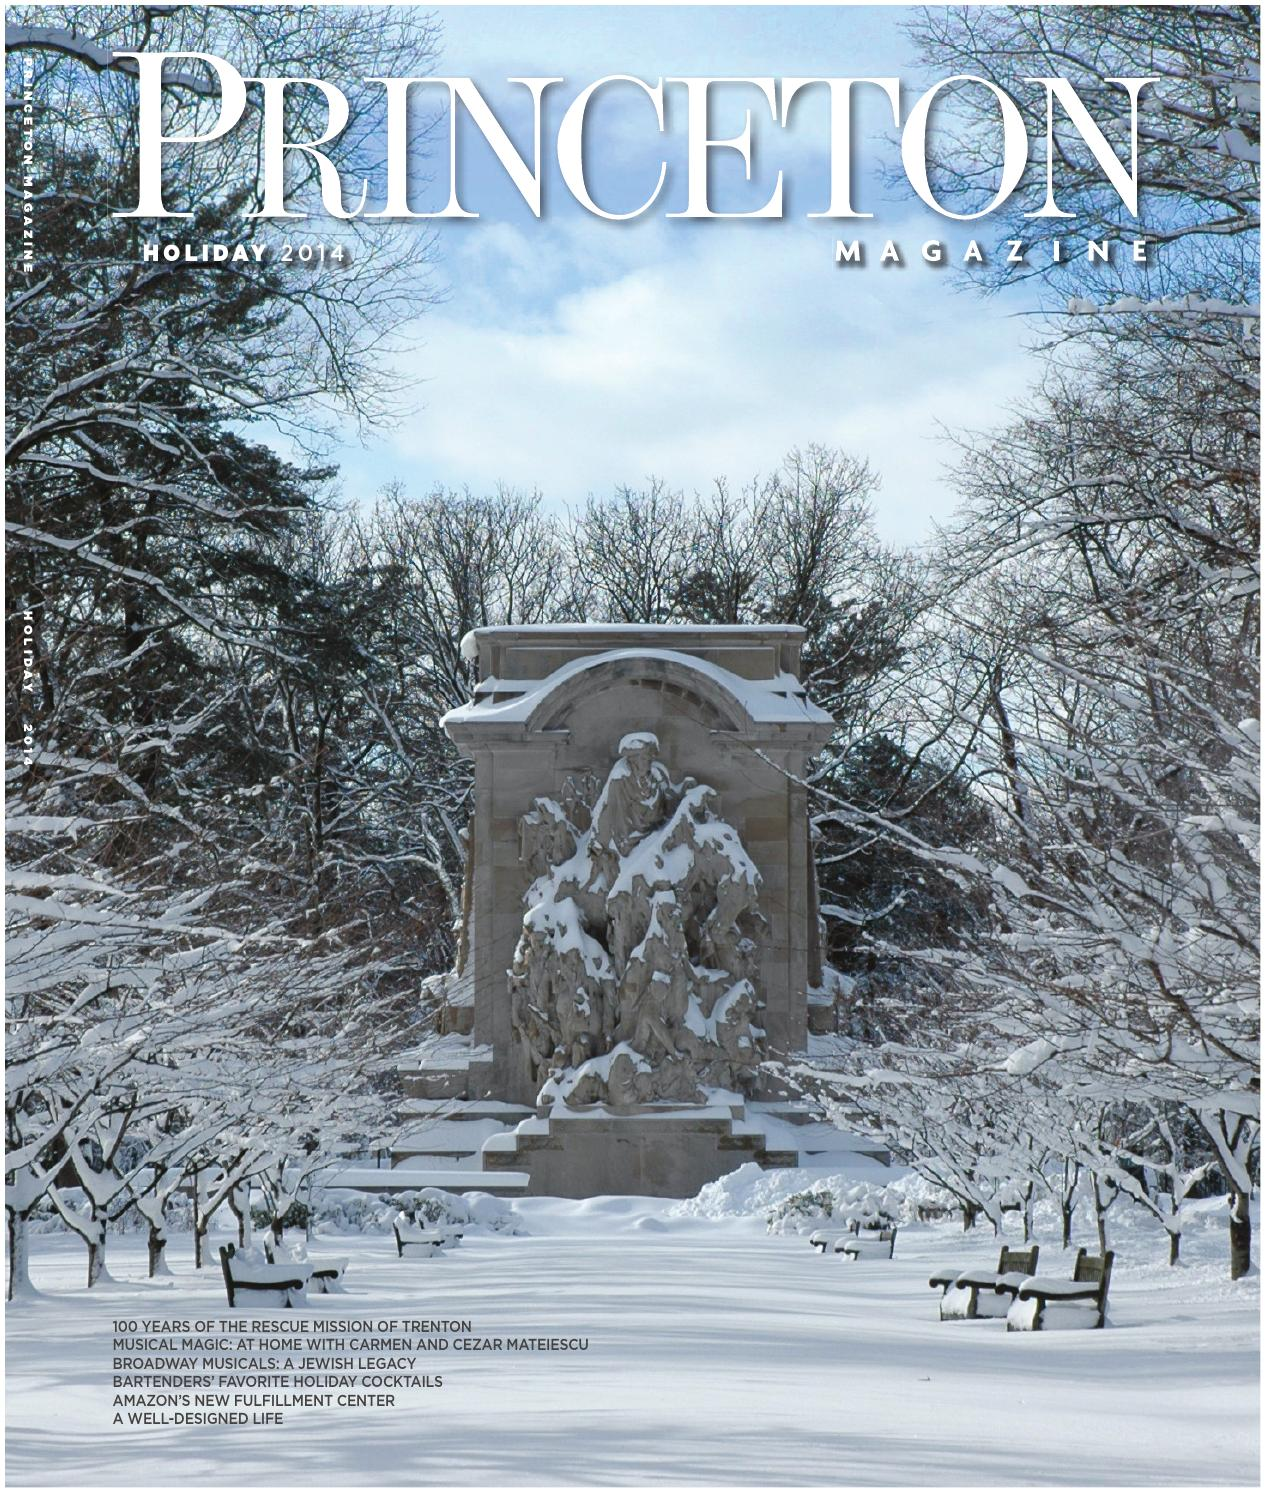 Princeton Magazine, Holiday 2014 by Witherspoon Media Group - issuu